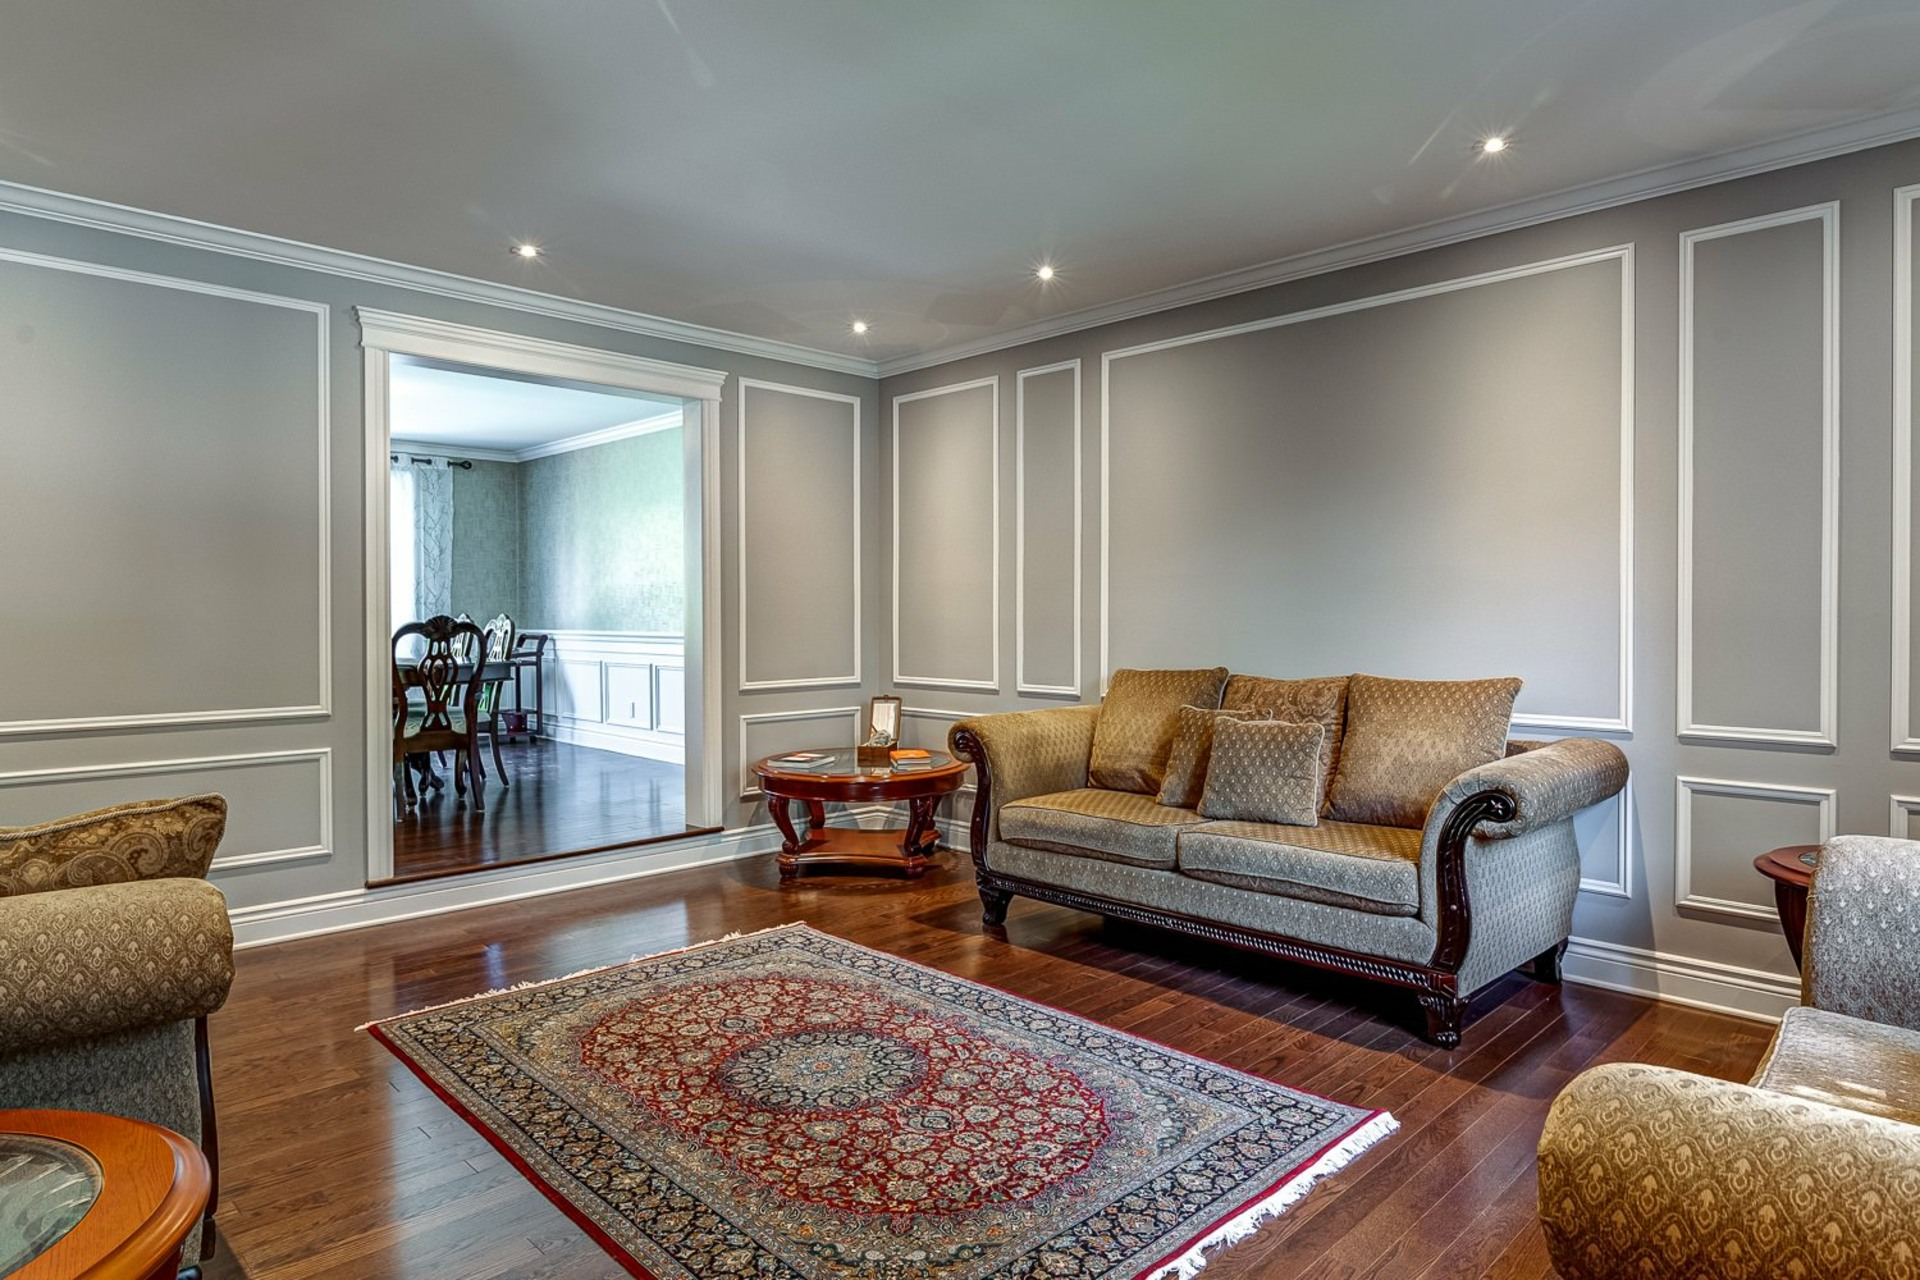 image 2 - House For sale Beaconsfield - 11 rooms